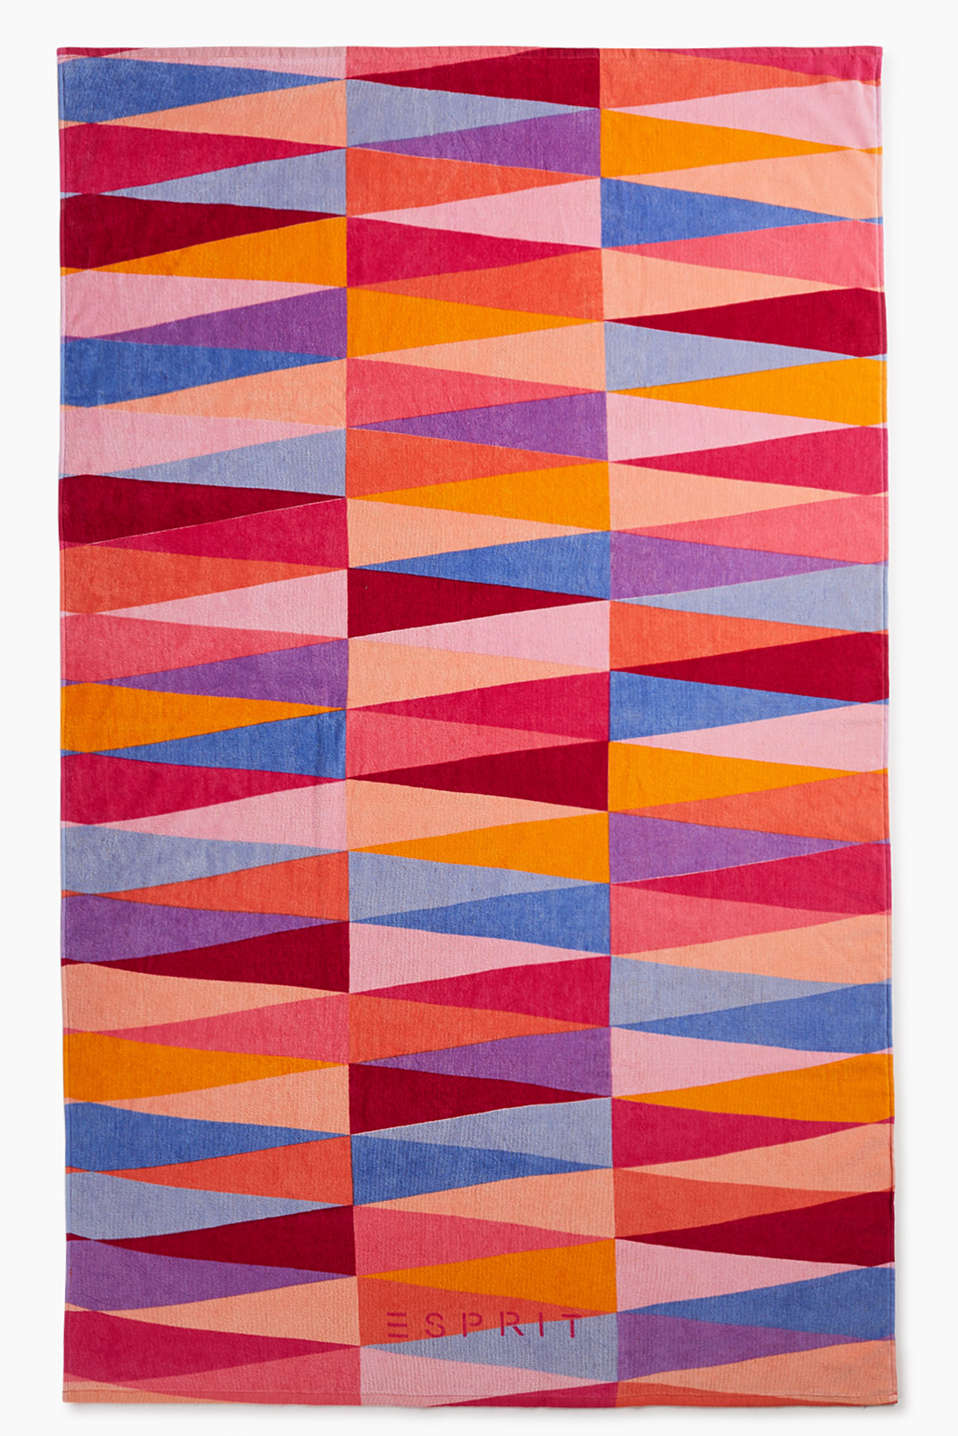 Beach towel in a large format with a jazzy, geometric print